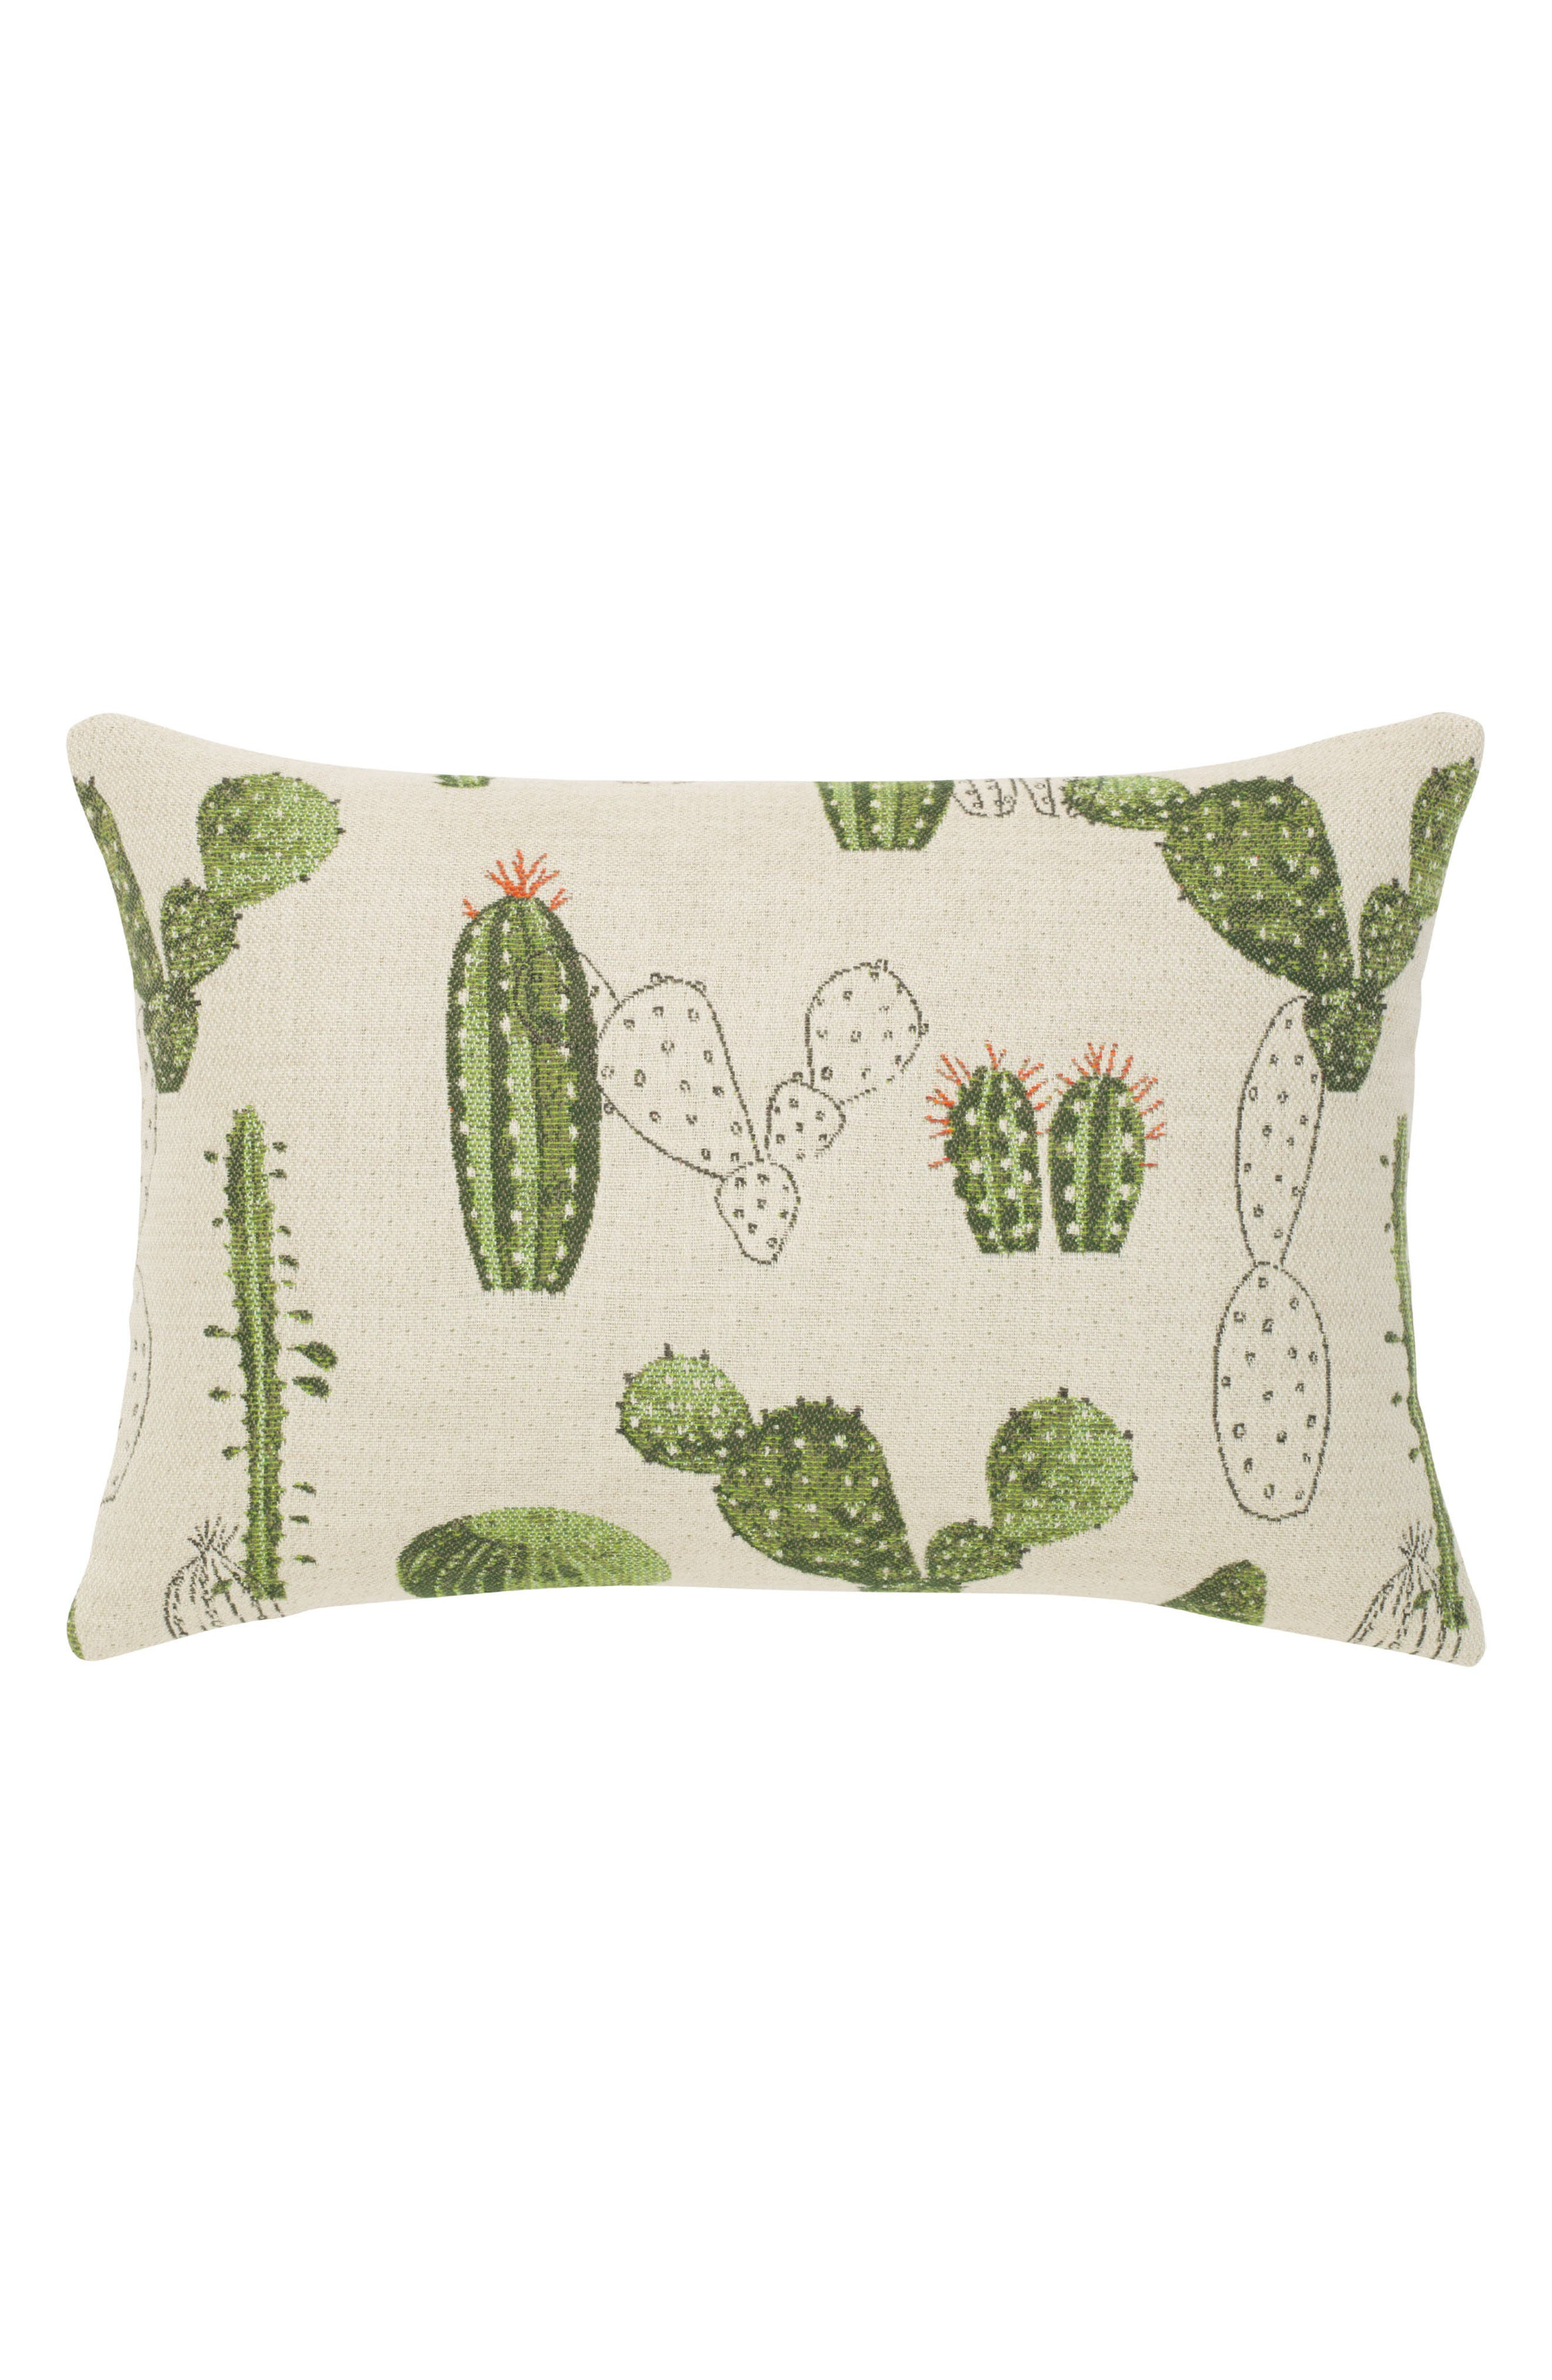 Cacti Indoor/Outdoor Accent Pillow,                             Main thumbnail 1, color,                             300